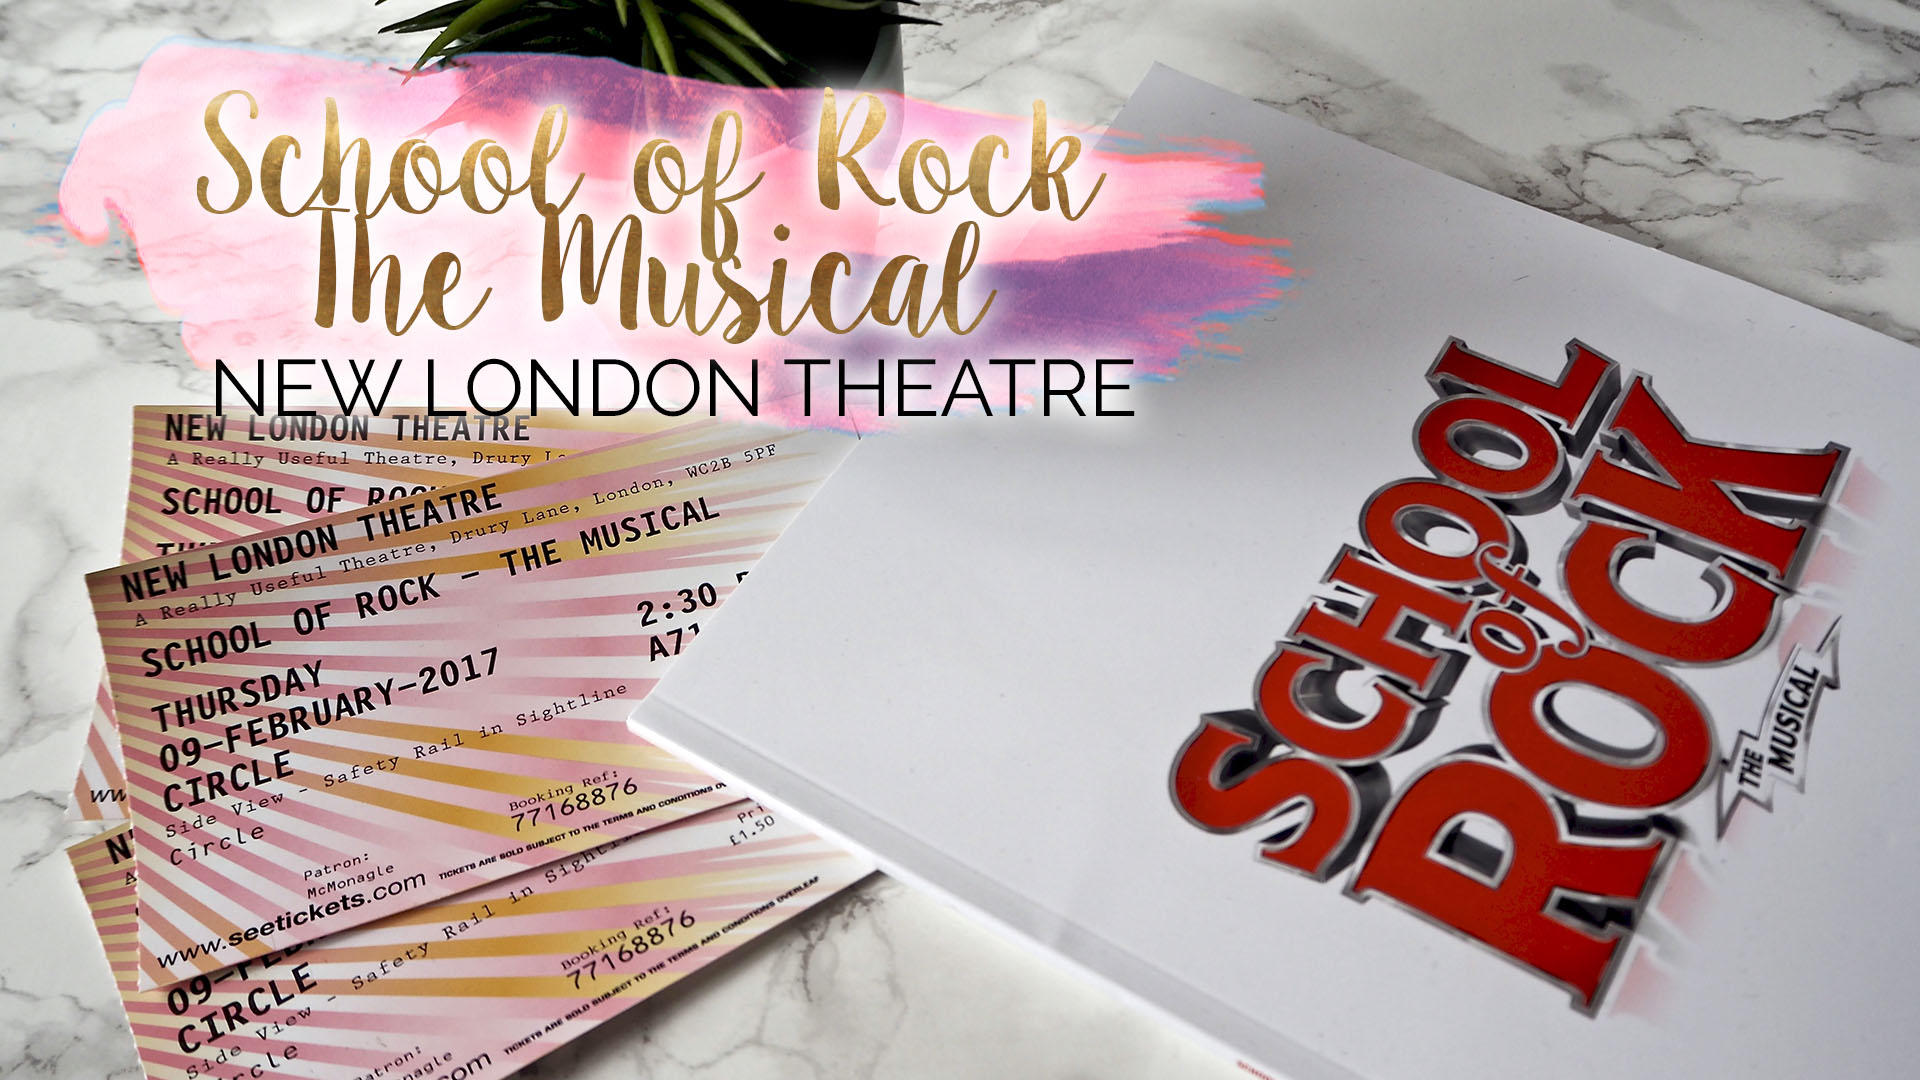 School Of Rock, The Musical - New London Theatre || London